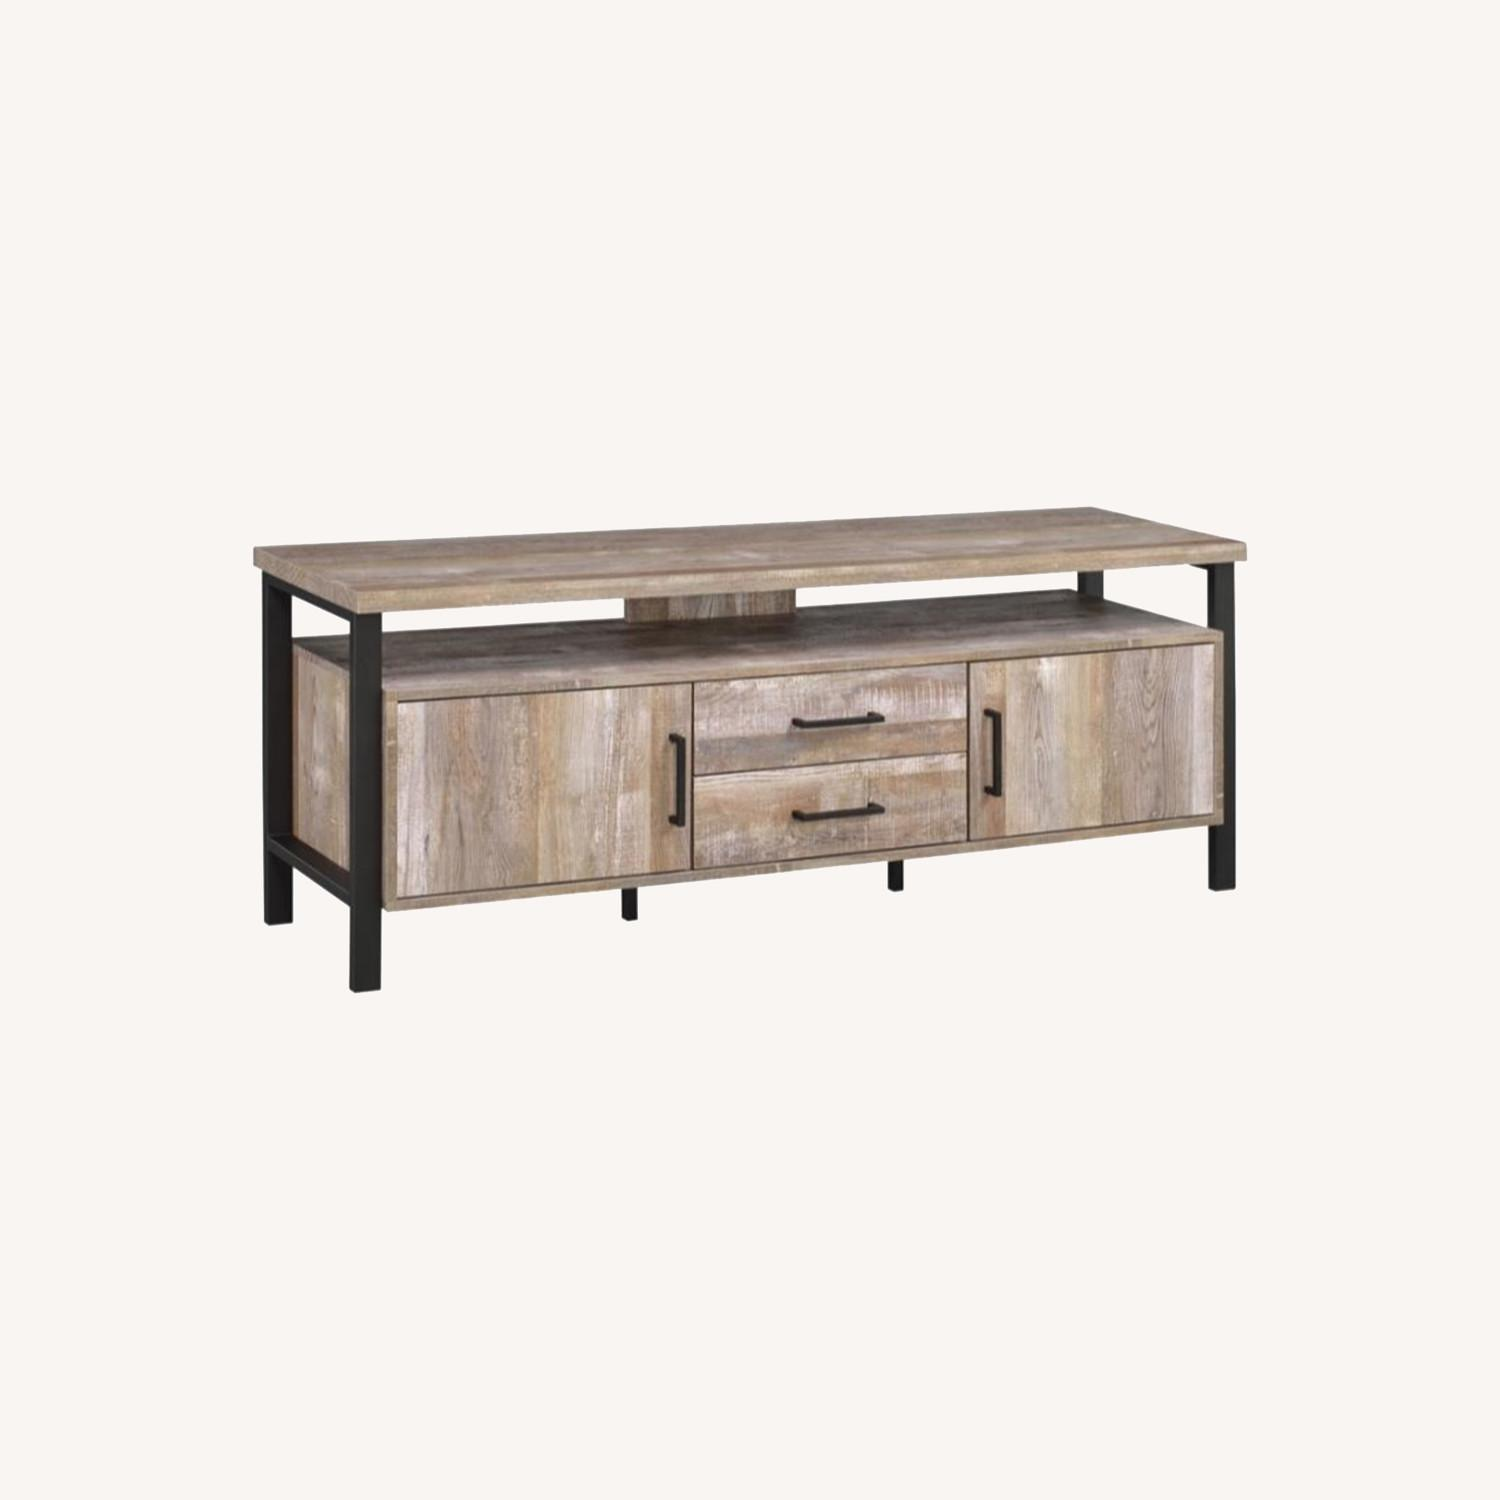 TV Console In Weathered Oak W/ Storage & Shelves - image-7